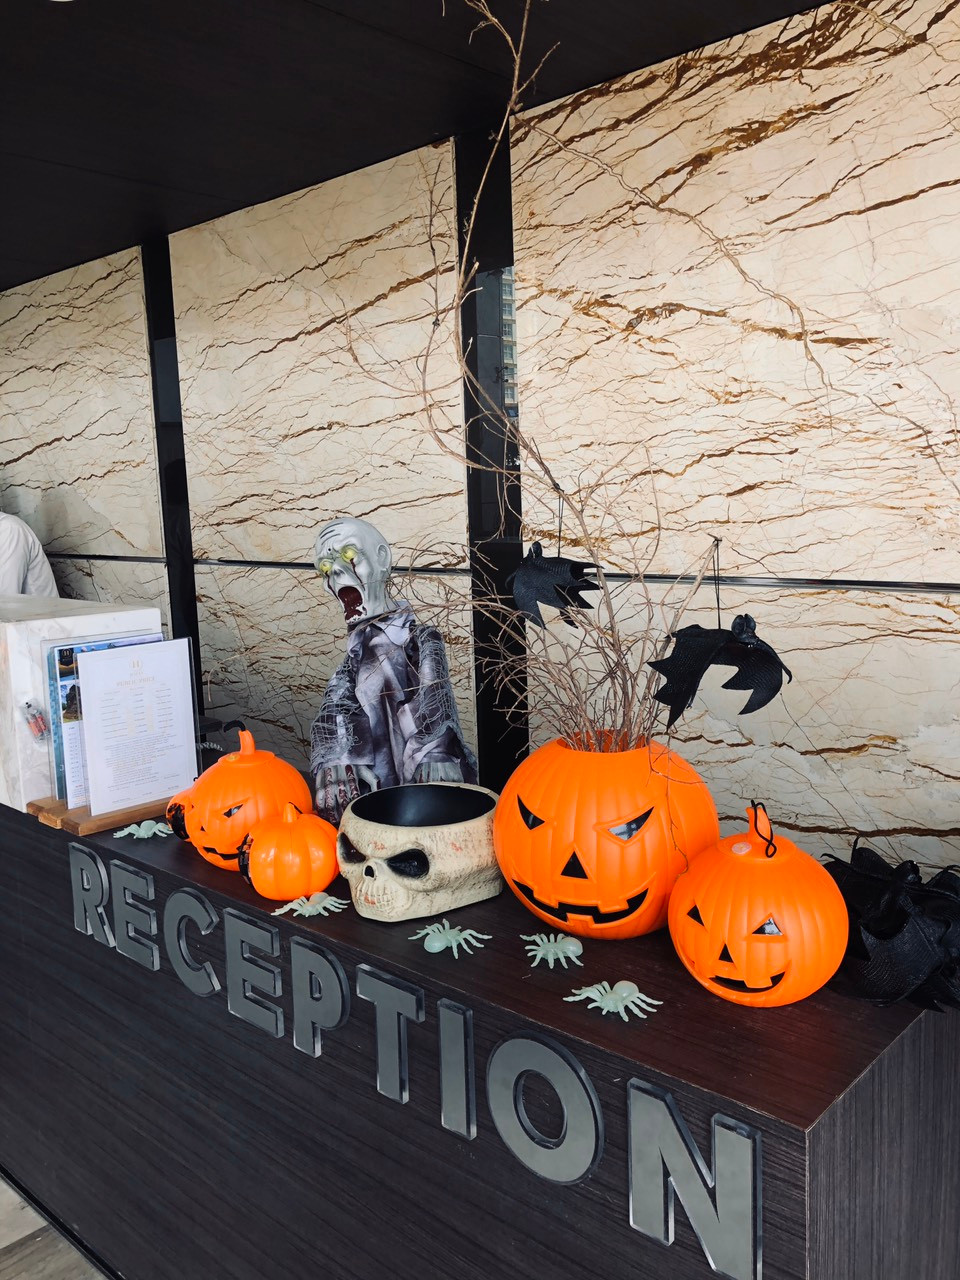 TOP 5 HOTELS HOLDING HALLOWEEN EVENTS IN DANANG